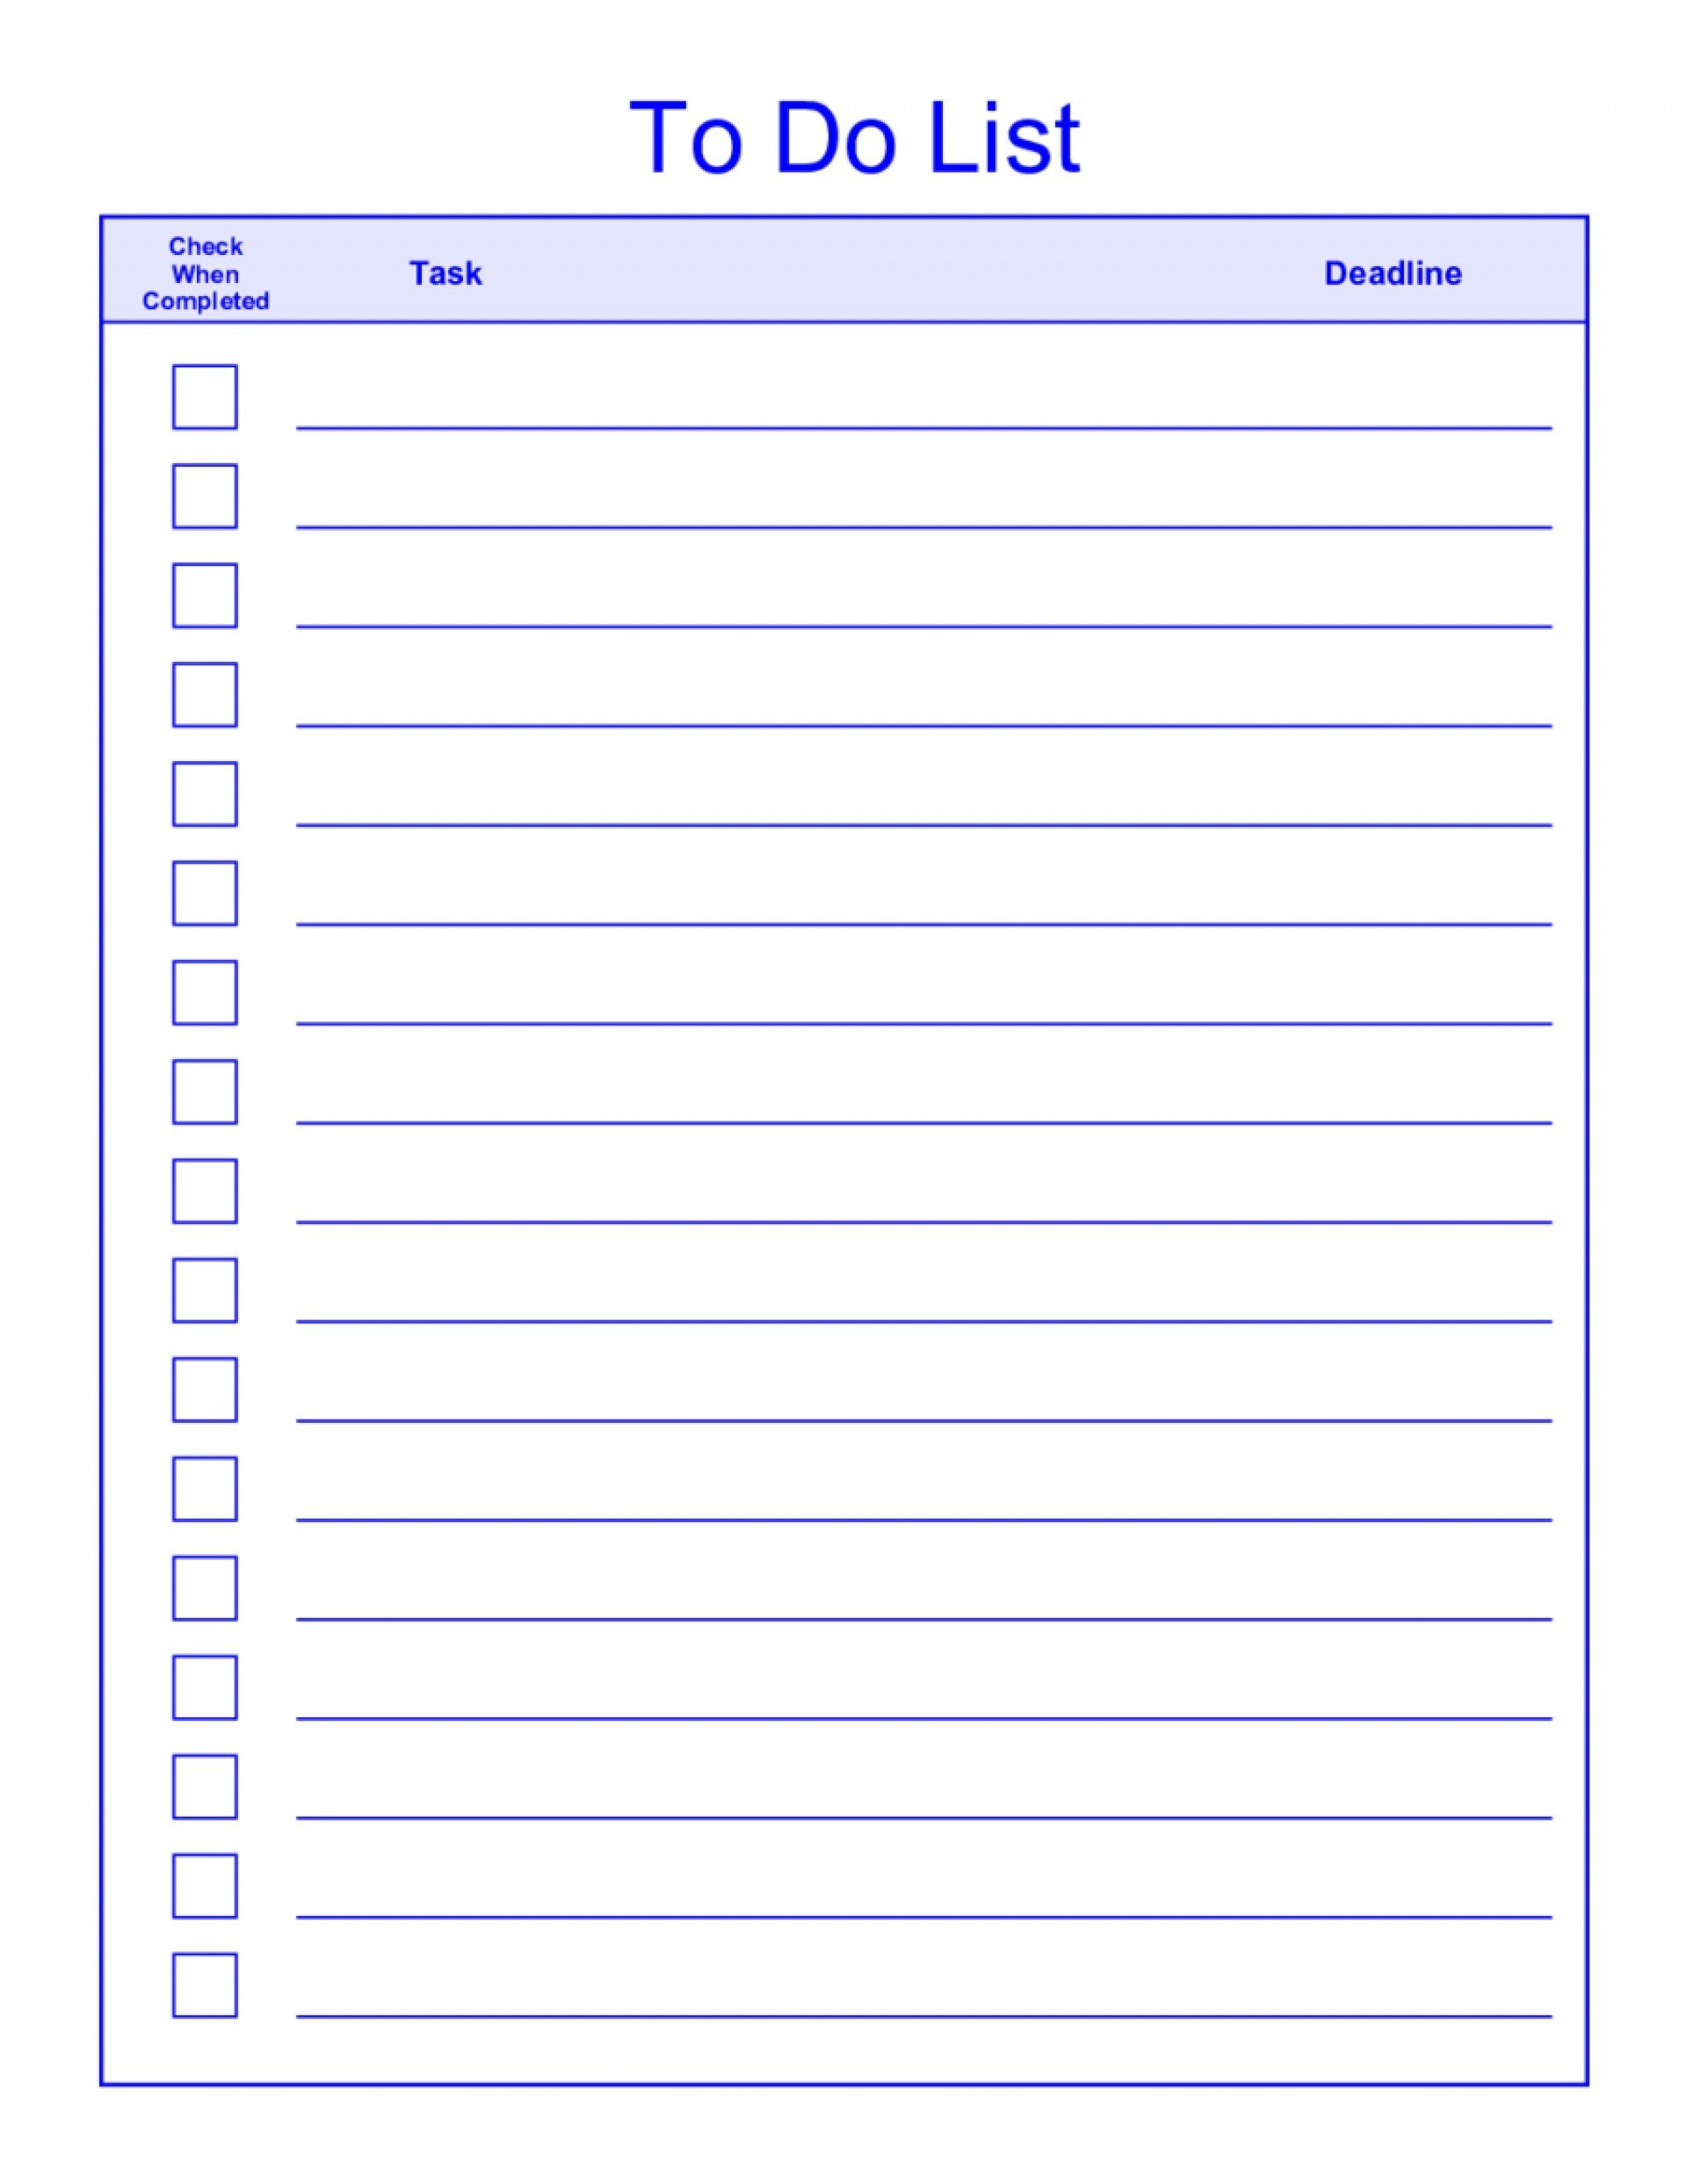 To Do List Template Word New  Things To Do List Template Pdf Regarding Blank Checklist Template Pdf